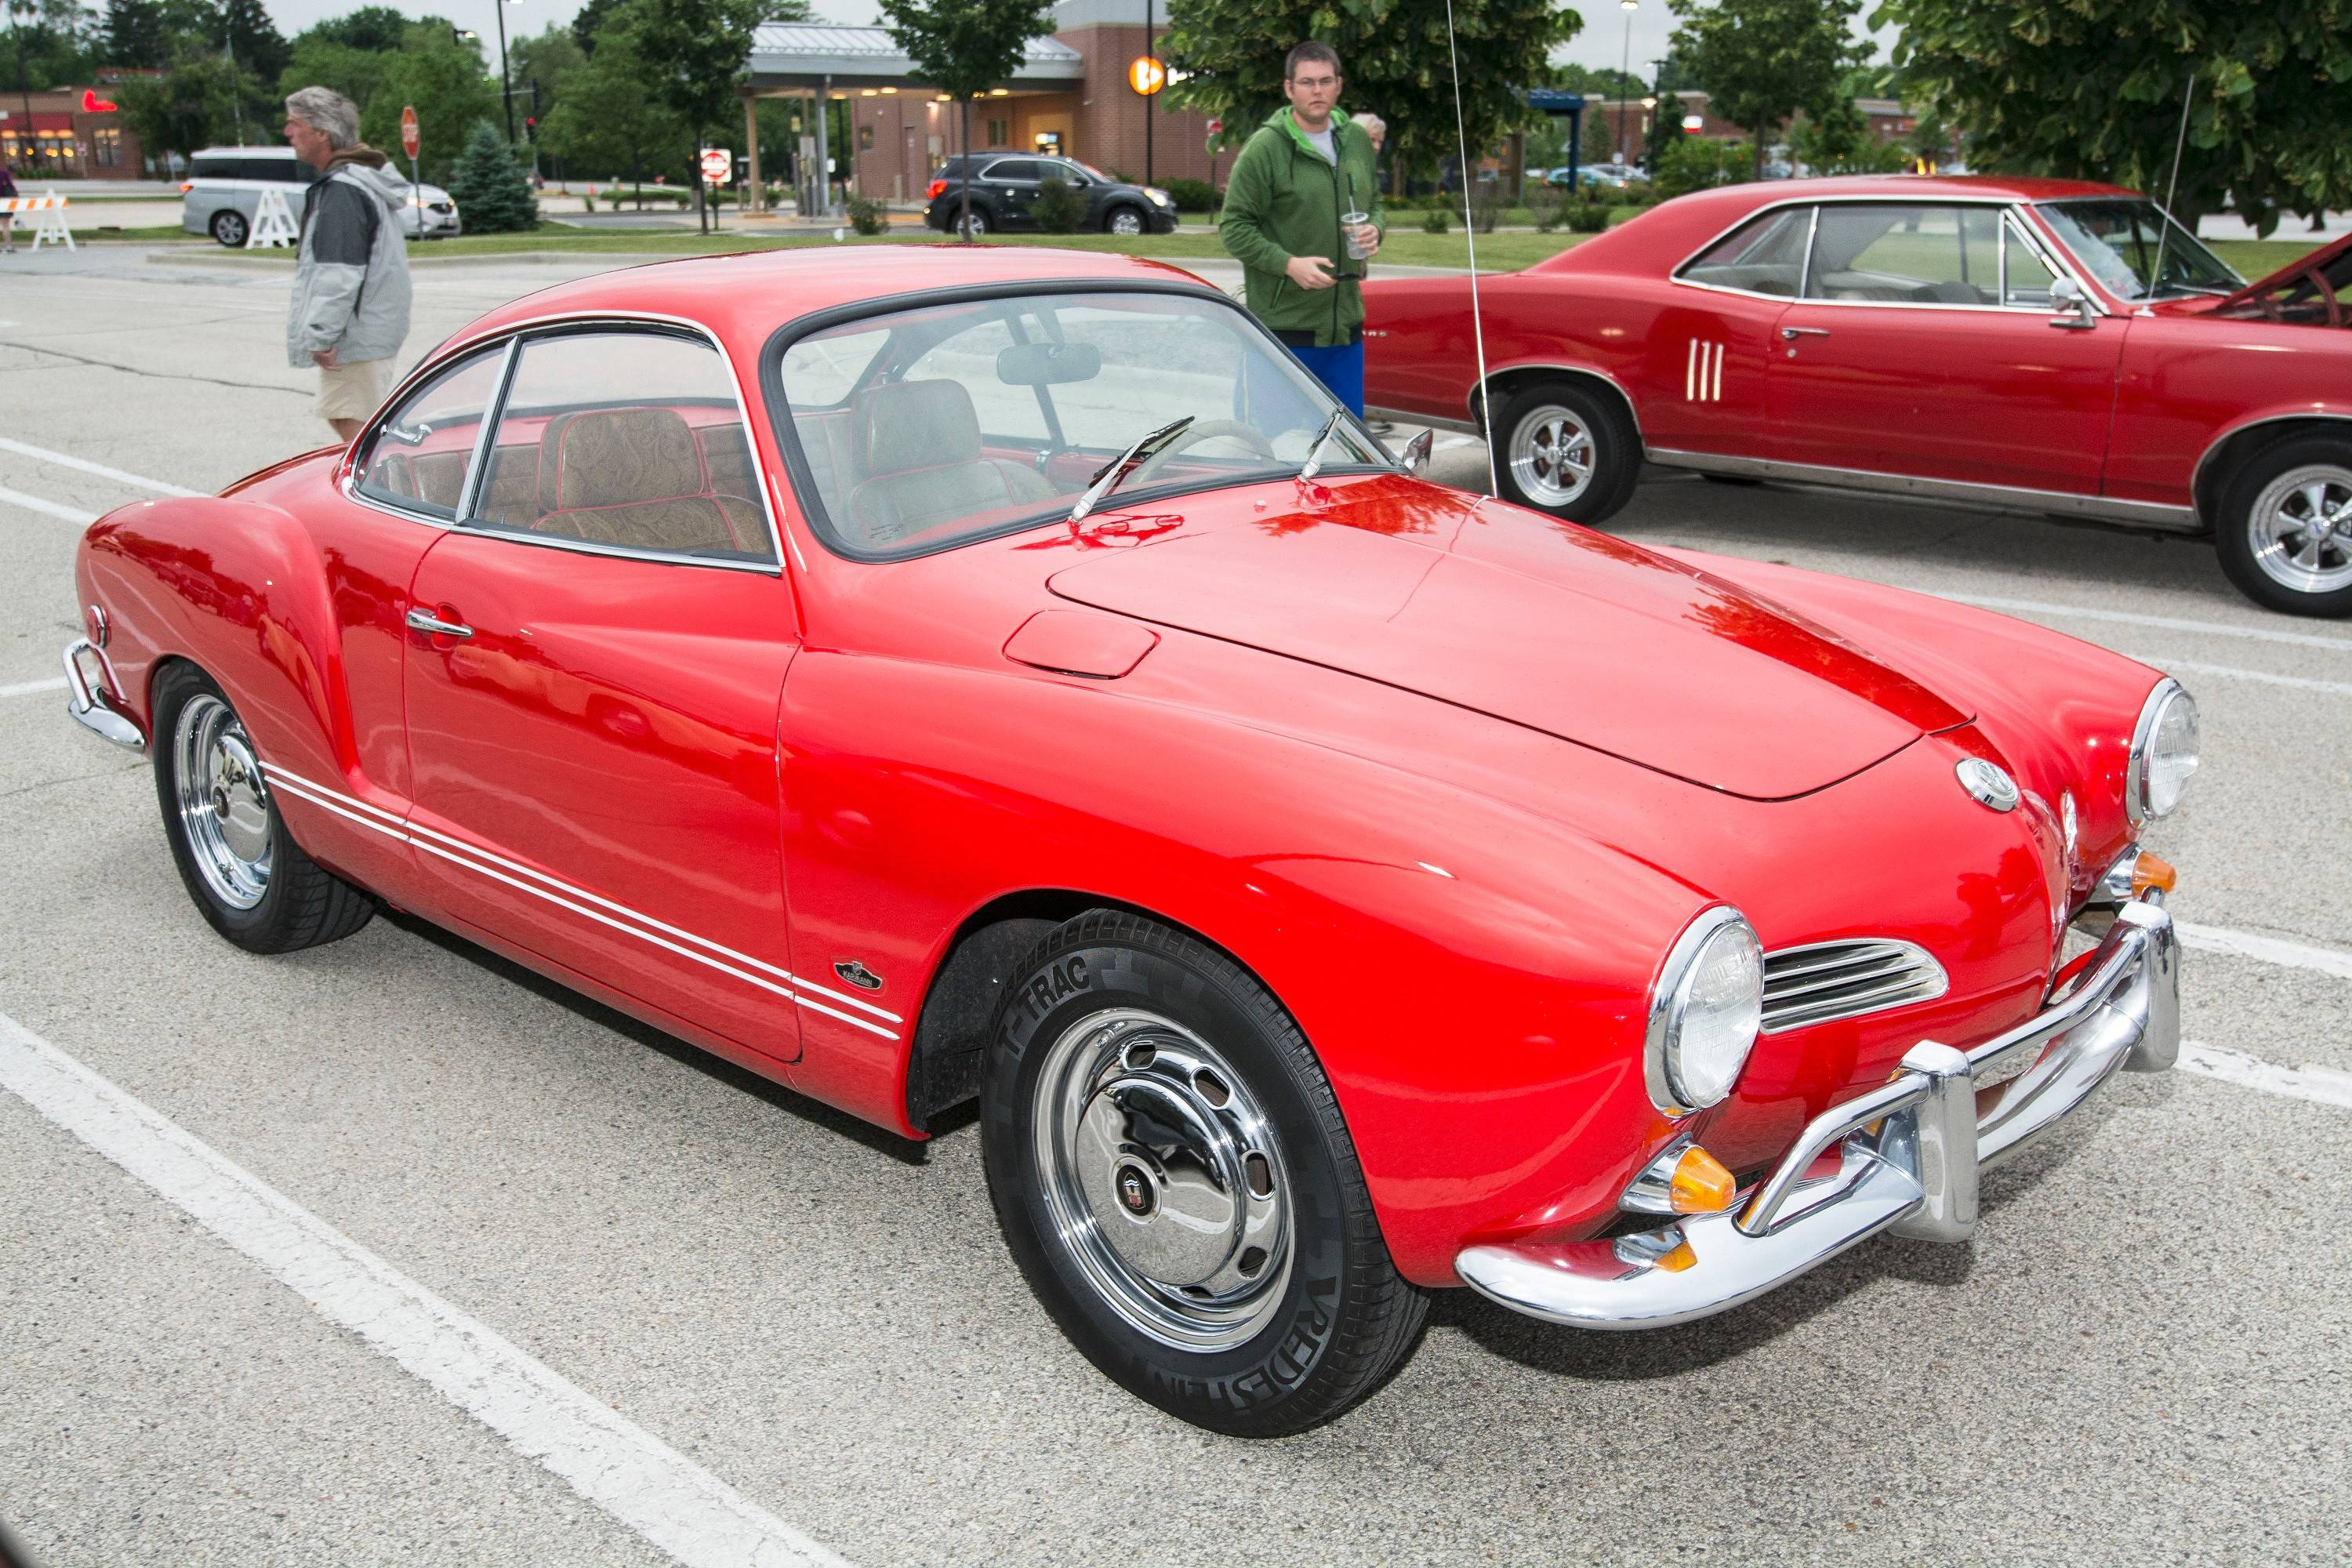 In the two years Gail Goldsmith of Palatine has owned her 1969 Karmann Ghia, she's had the engine rebuilt and replaced the badging. She had just gotten the car back the morning of the cruise night after having the interior redone in paisley-patterned leather.